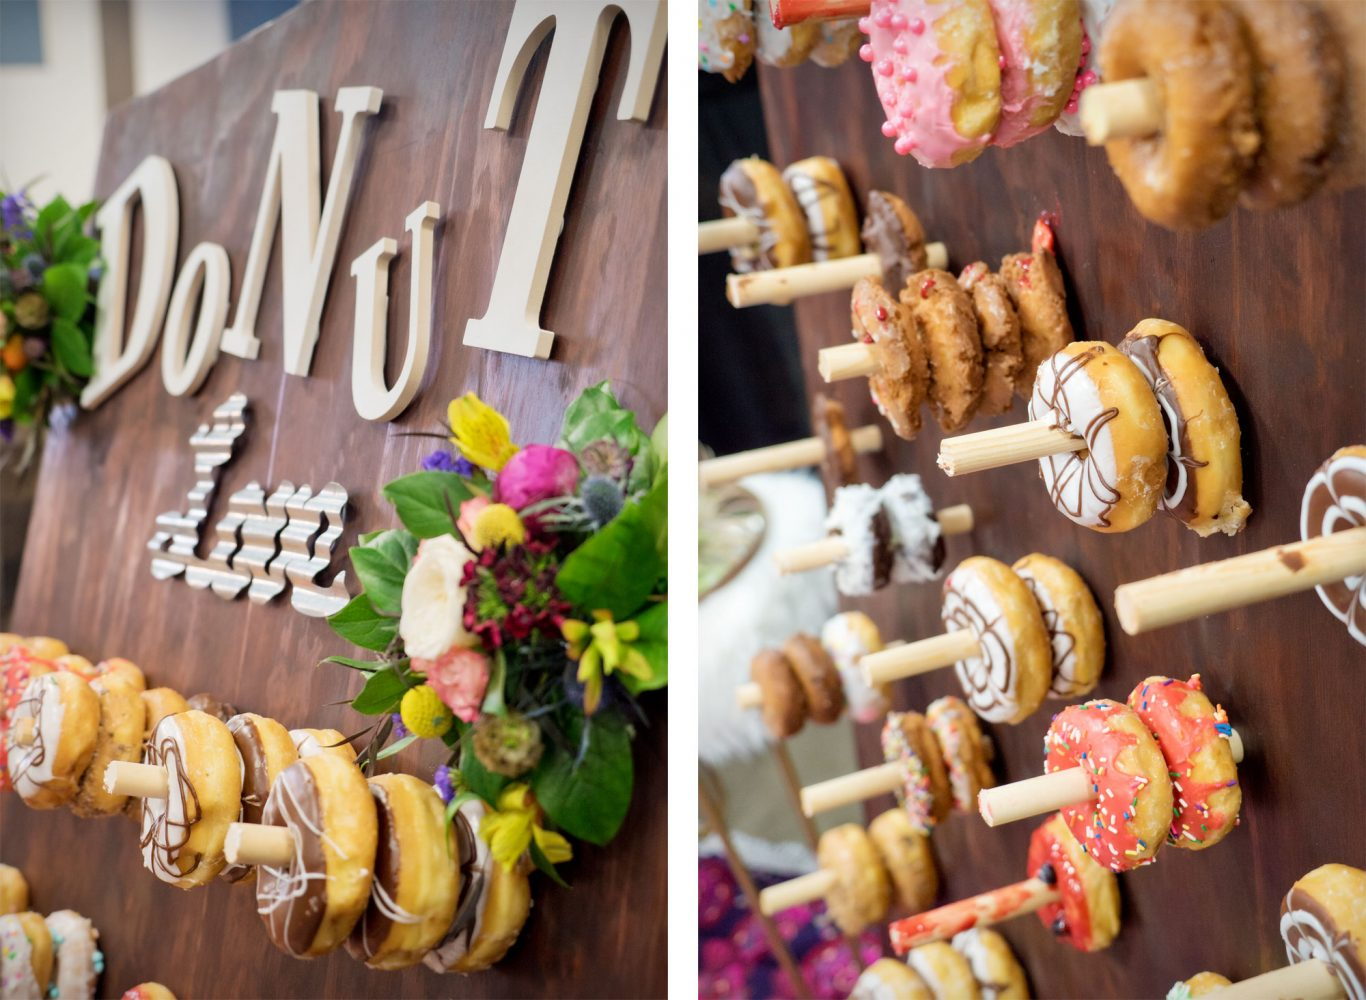 Donut wall by April's Garden at the annual Durango Wedding Expo